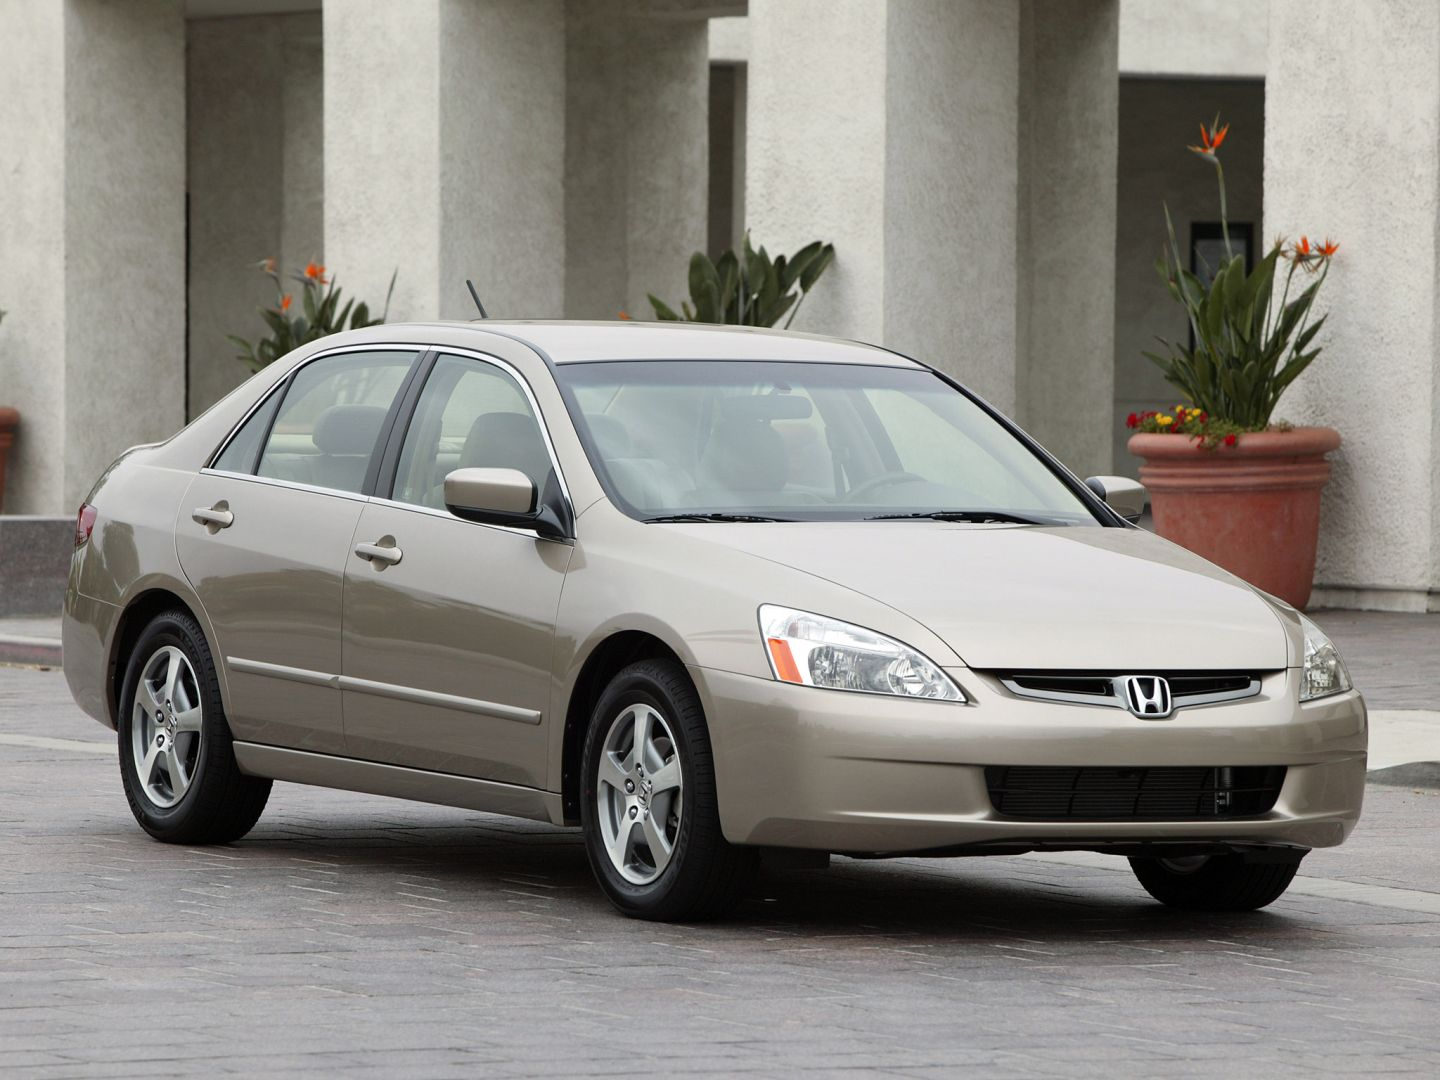 HONDA Accord Sedan US - 2005, 2006, 2007 - autoevolution